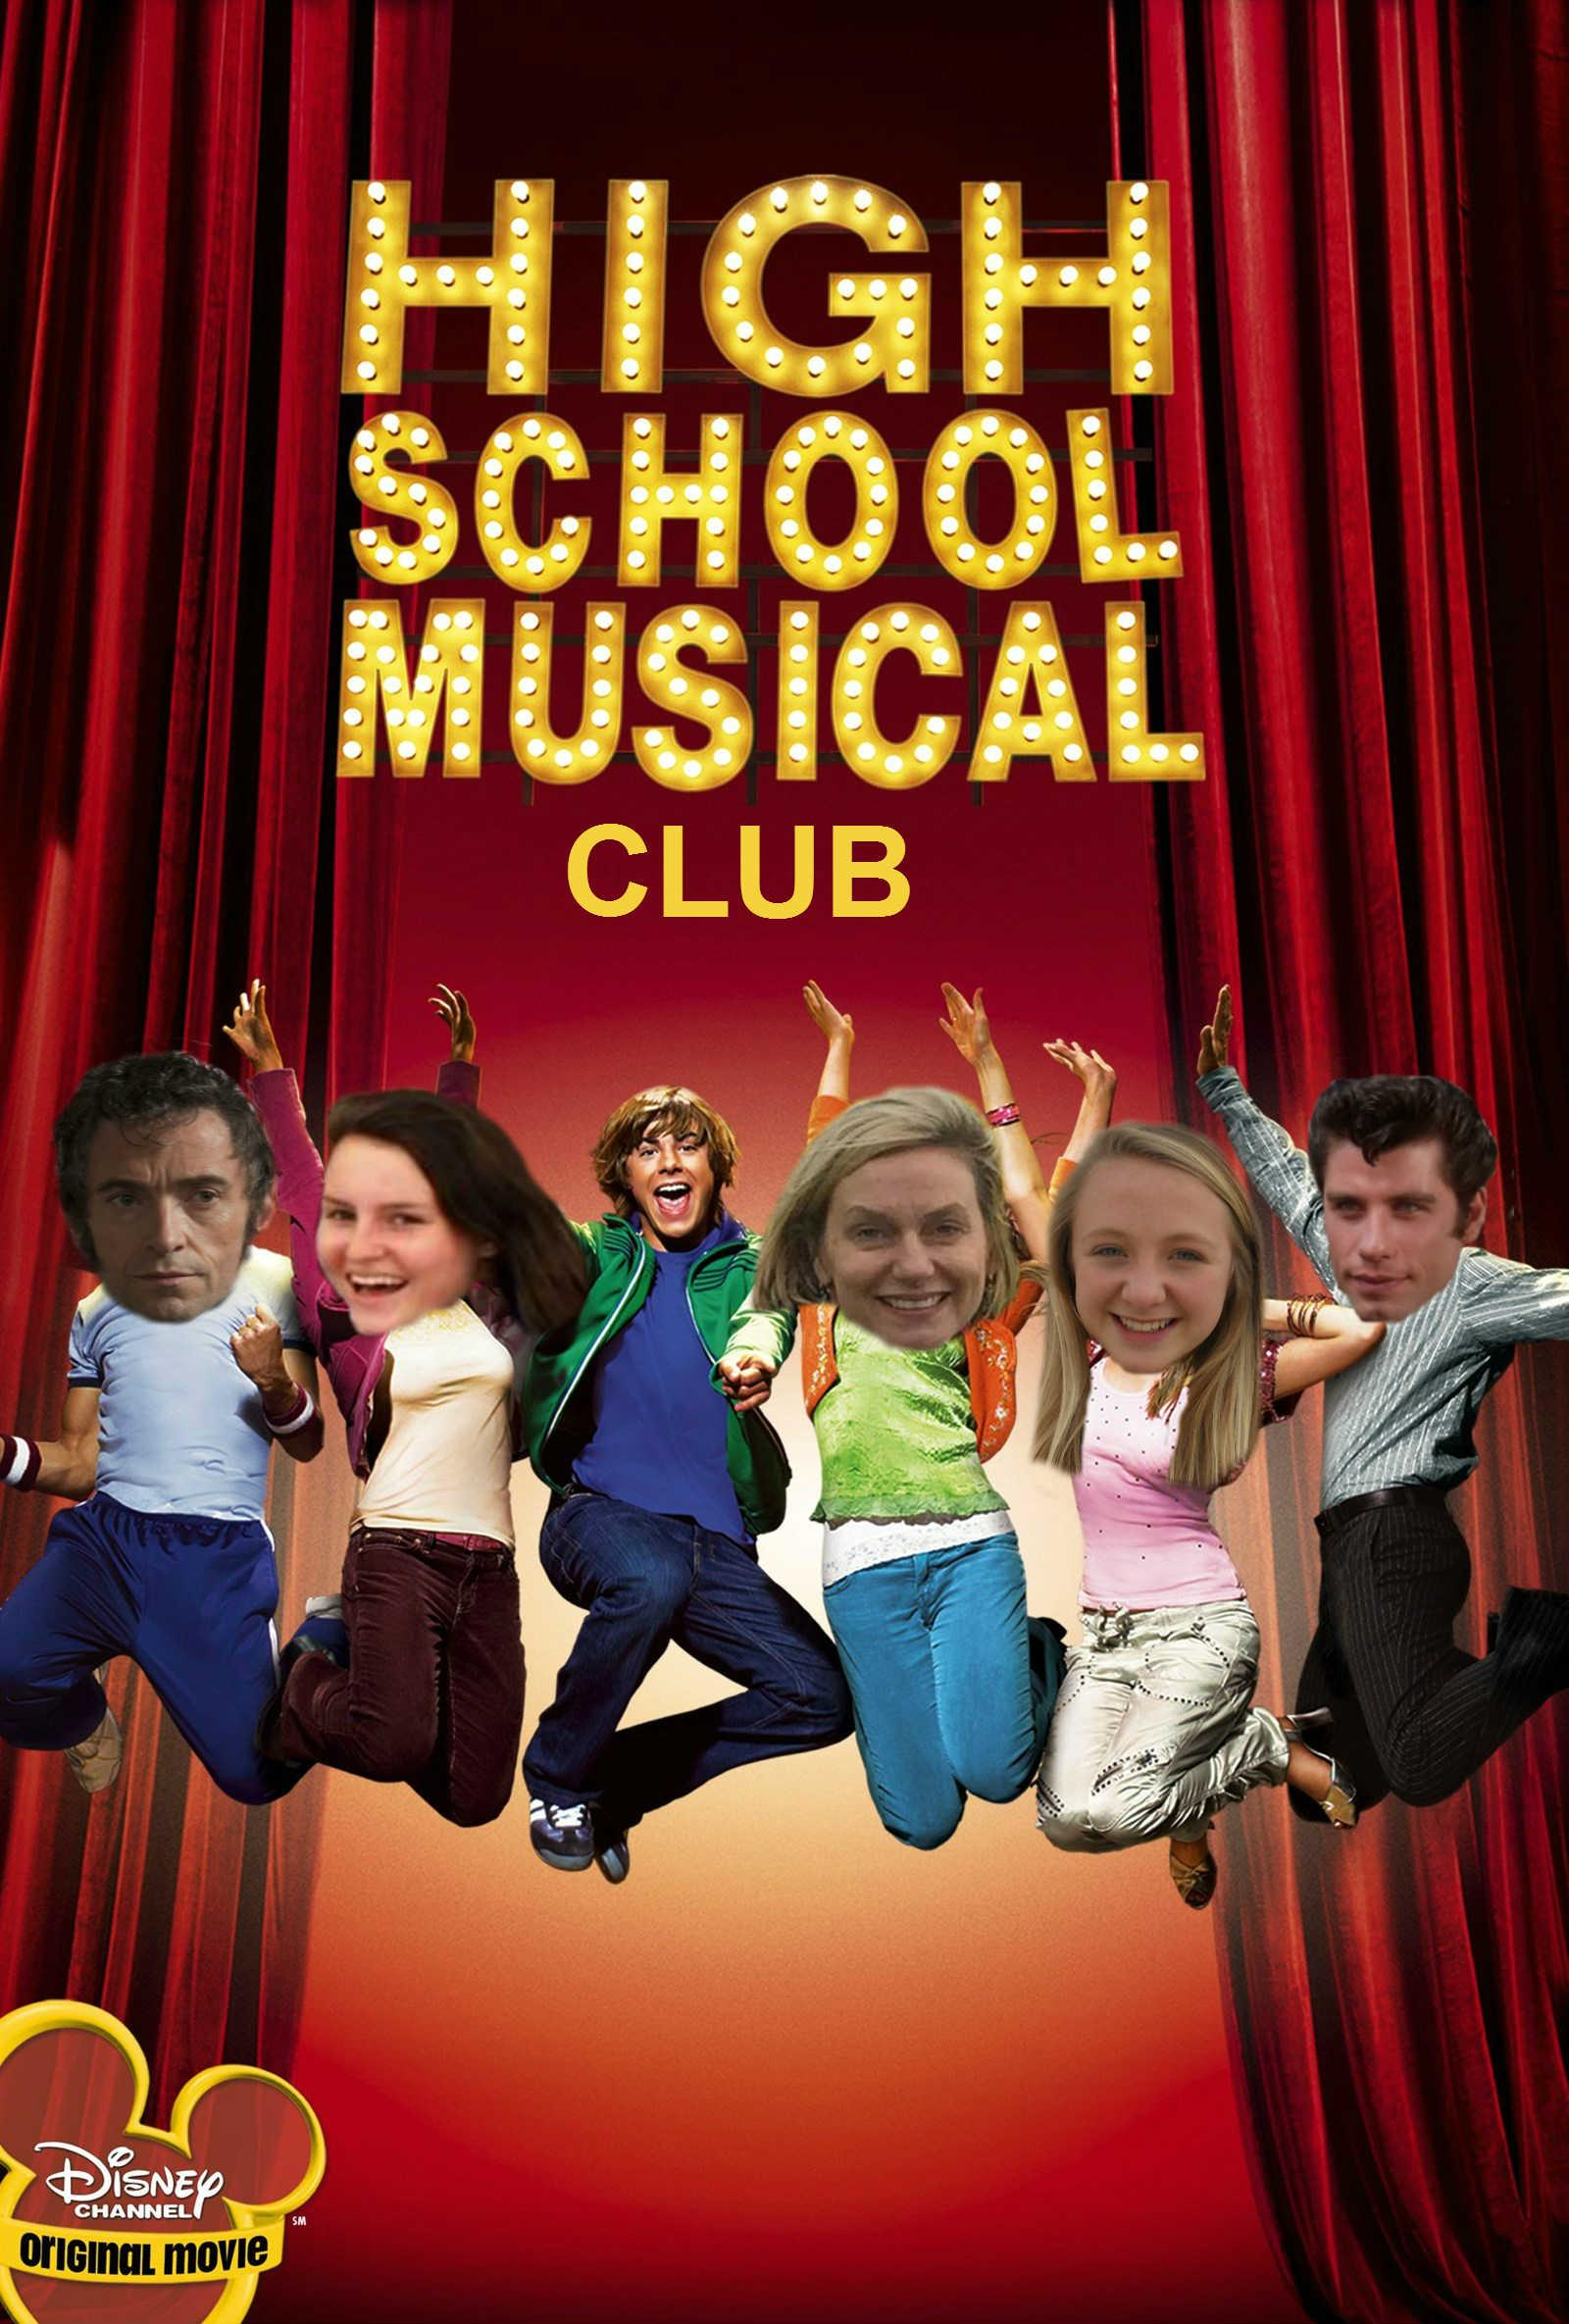 From left to right: Jean Valjean, Maggie Winters, Troy Bolton, Mrs. Lankford, Natasha Tirpak, Danny